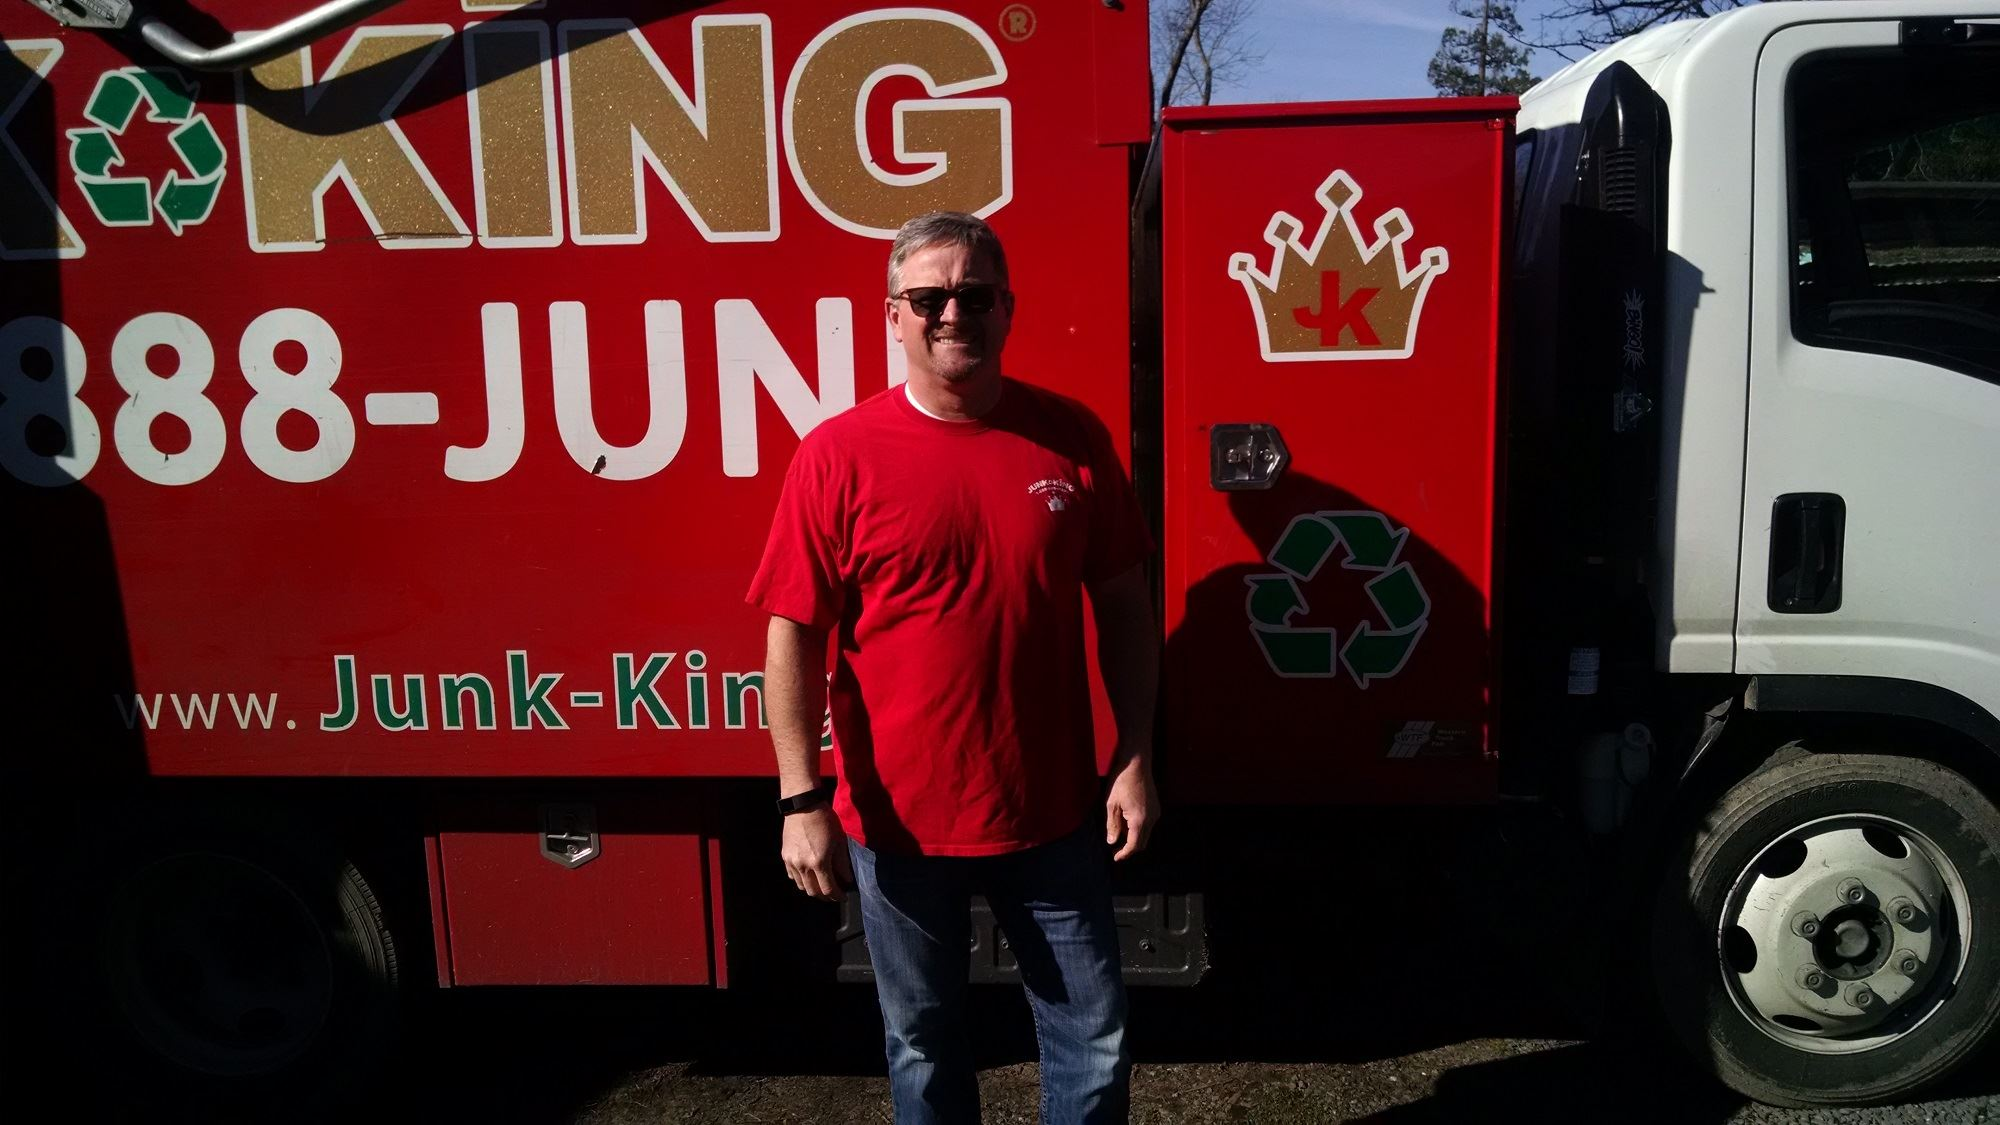 Junk King Franchise Owner, Matt Verga and Maggie Verga.